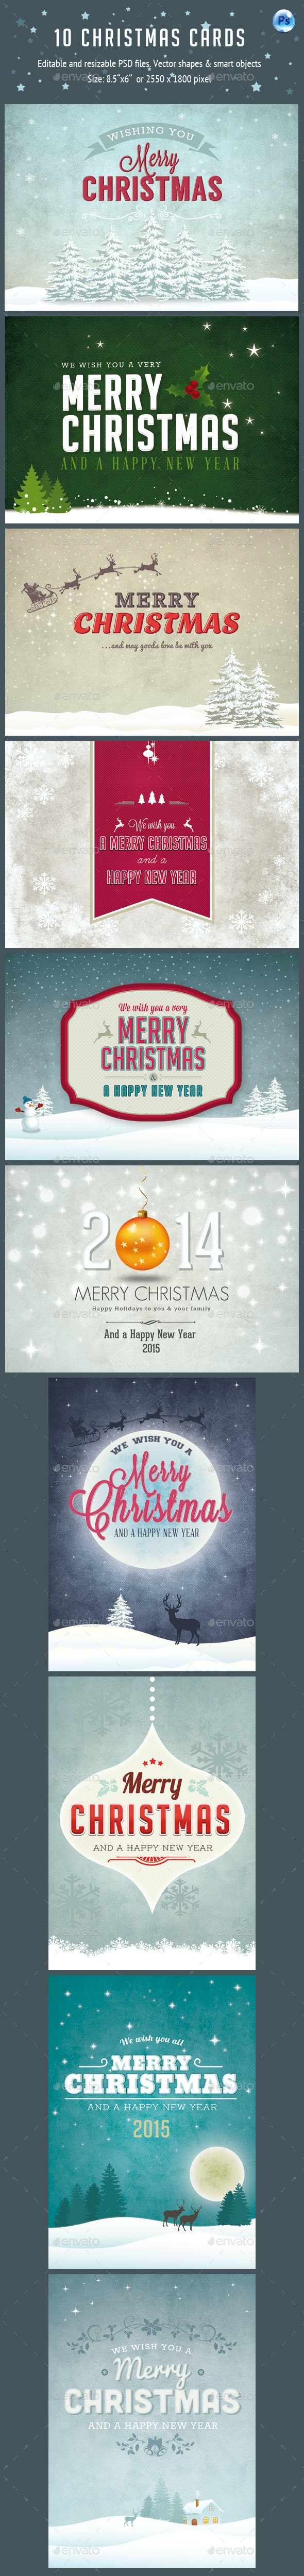 10 Christmas Cards PSD Vol.2 - Cards & Invites Print Templates